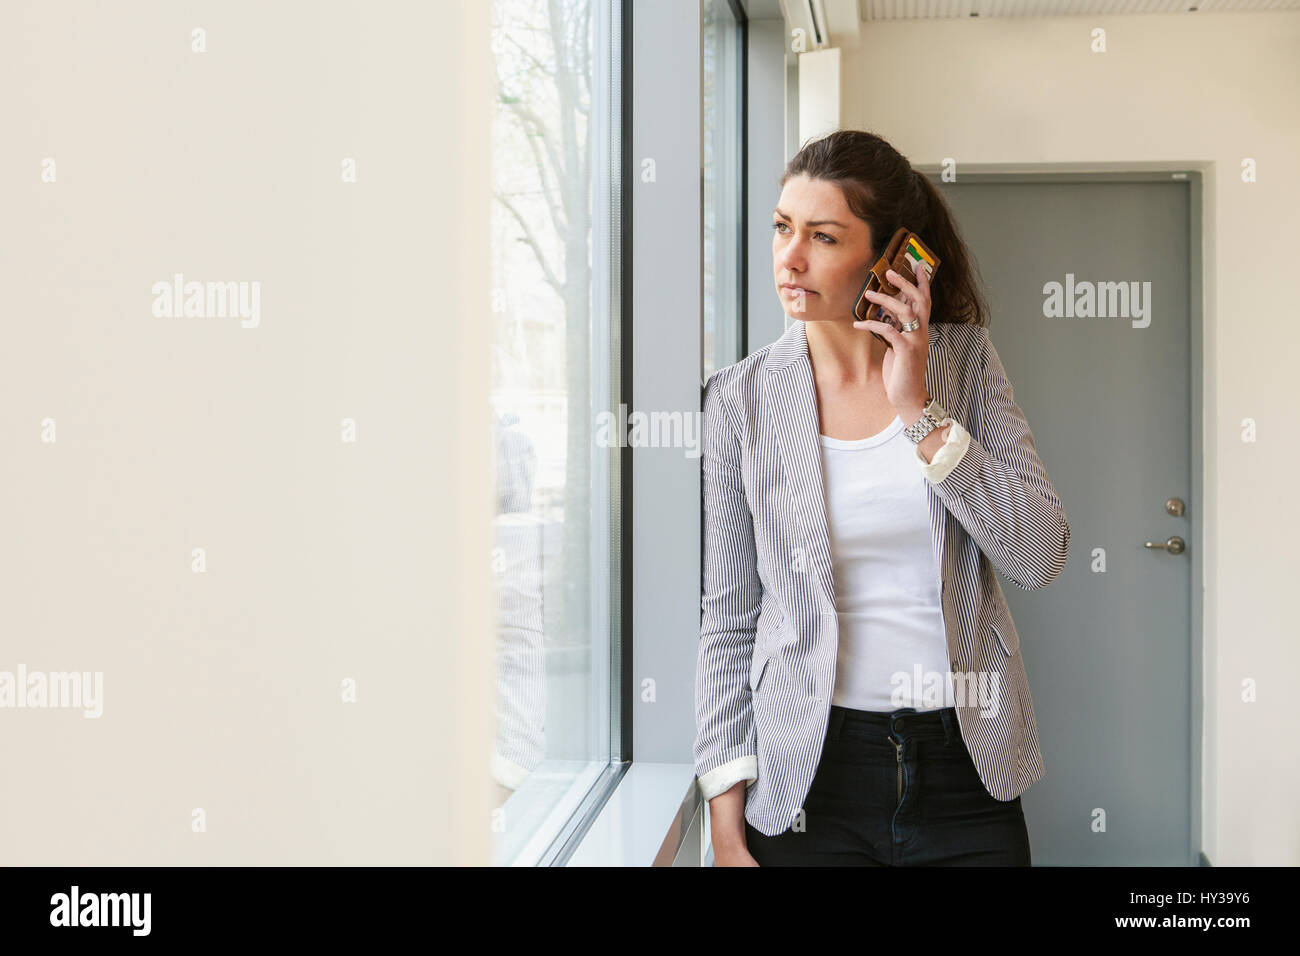 Sweden, Businesswoman looking through window and using smartphone - Stock Image